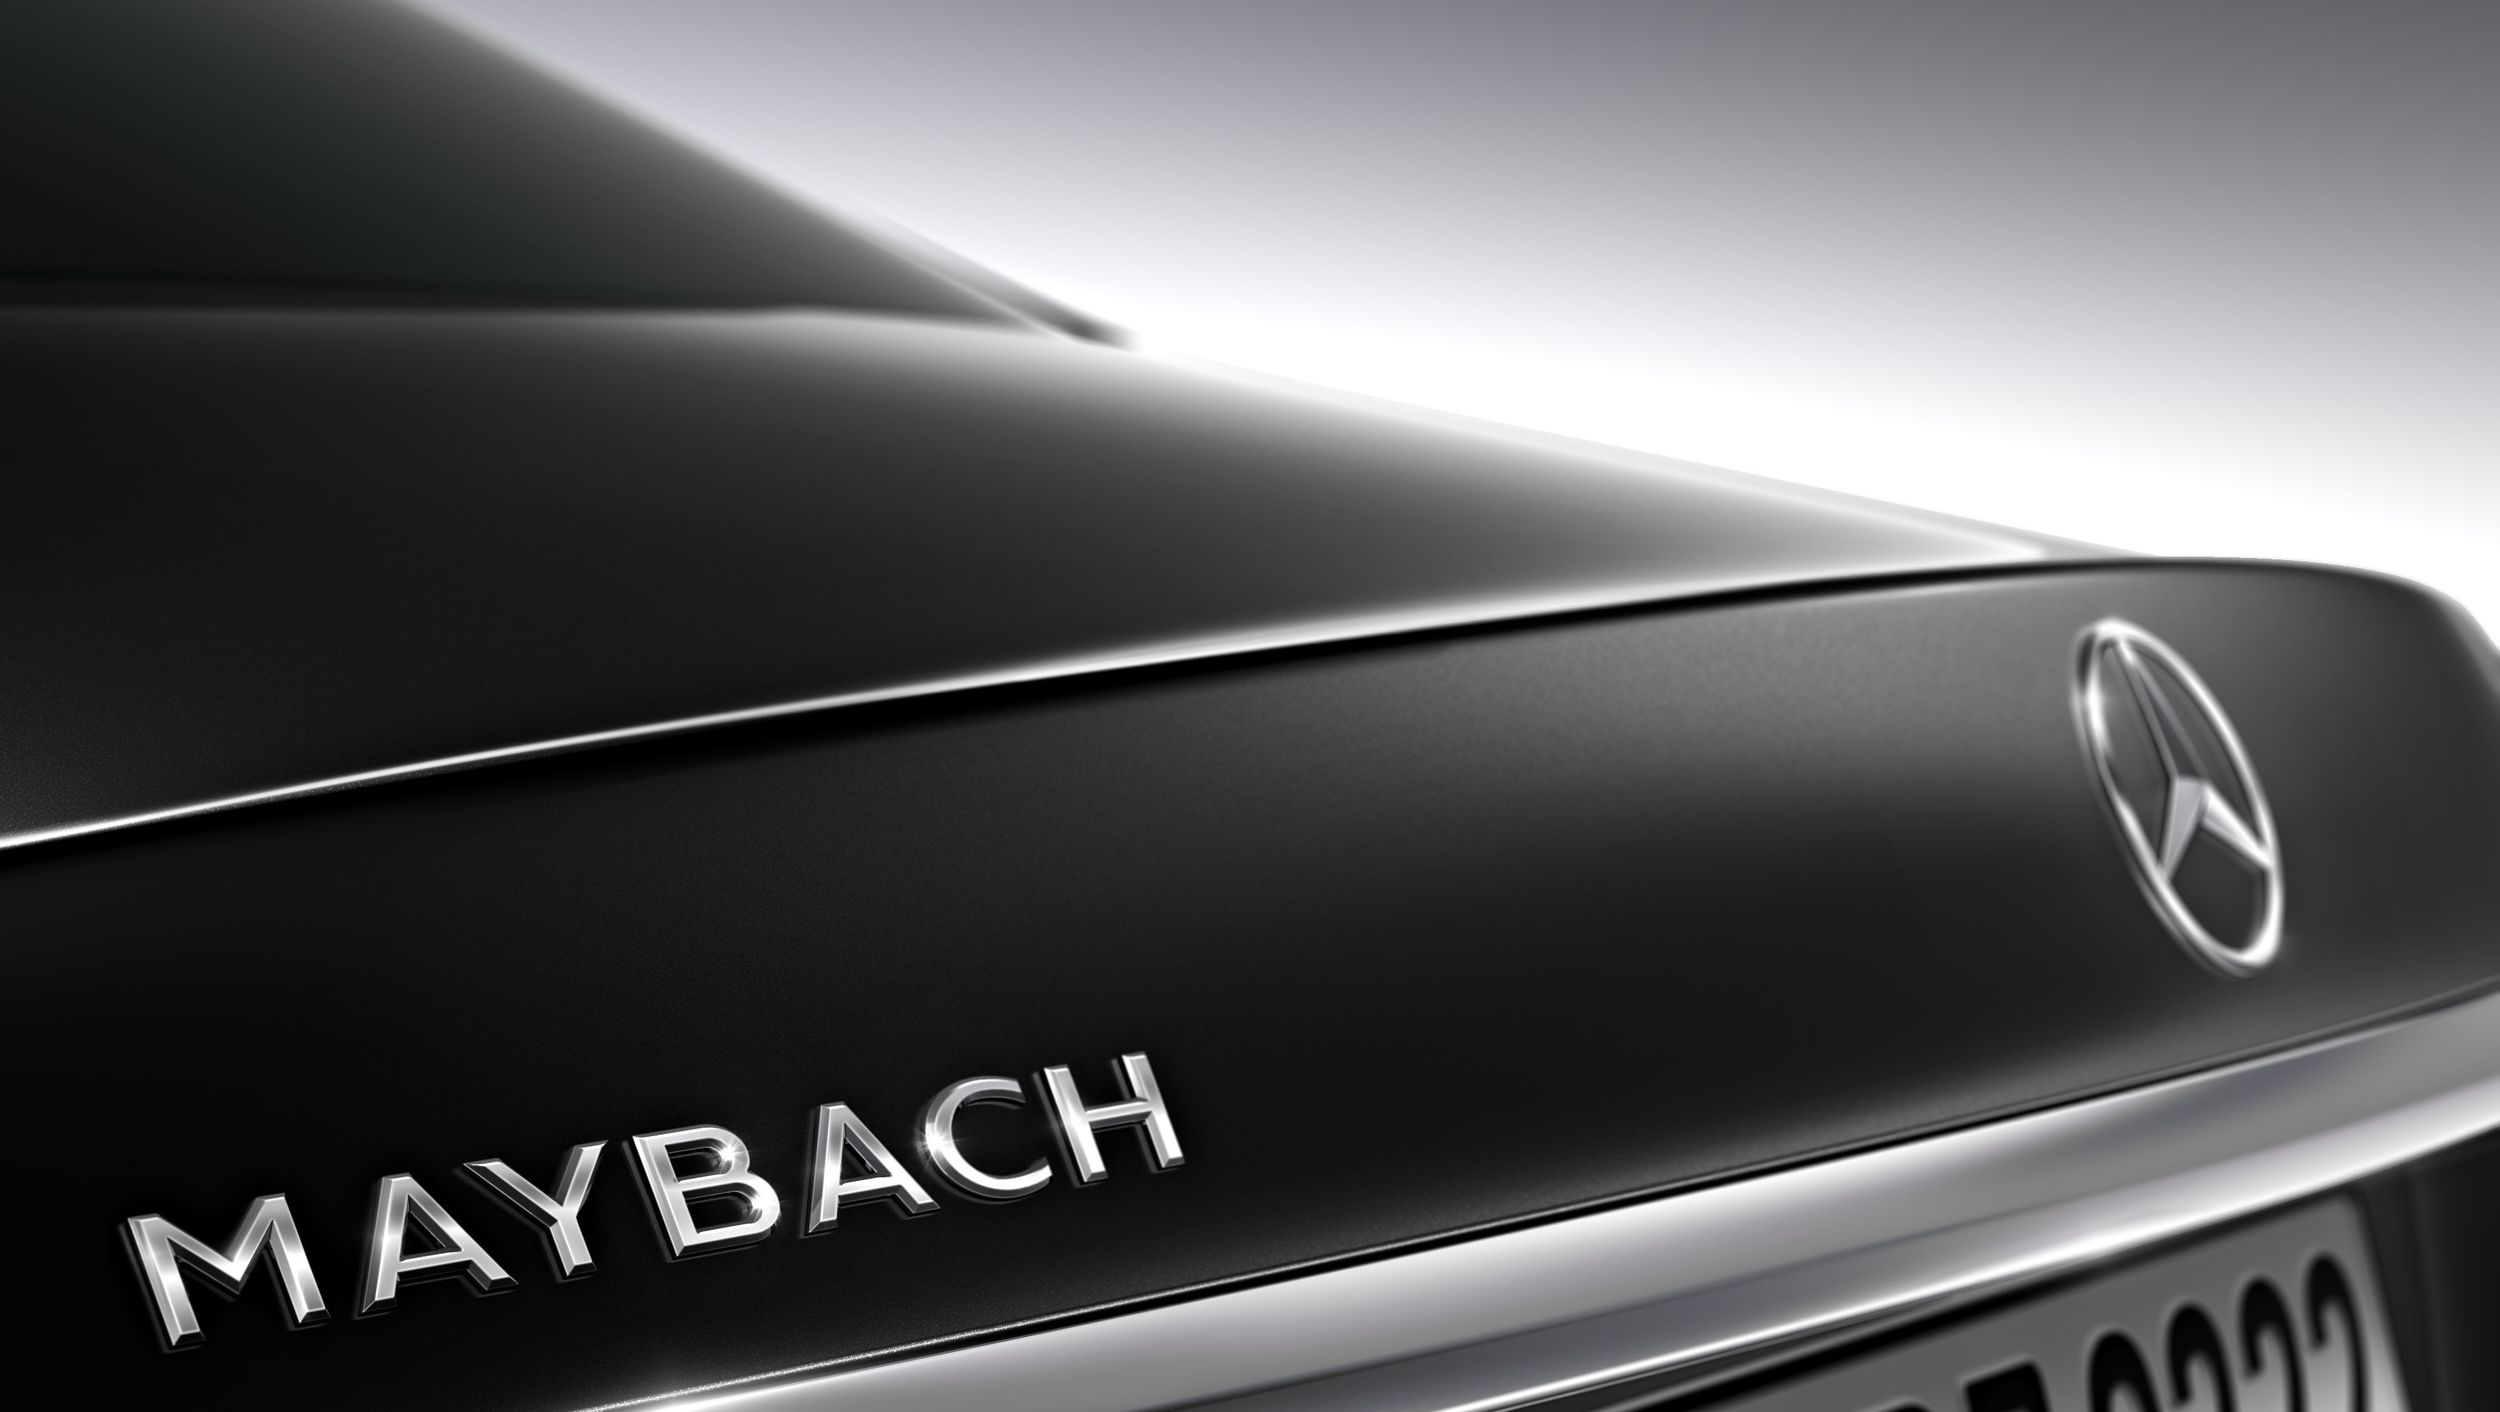 Maybach and Mercedes on the boot.